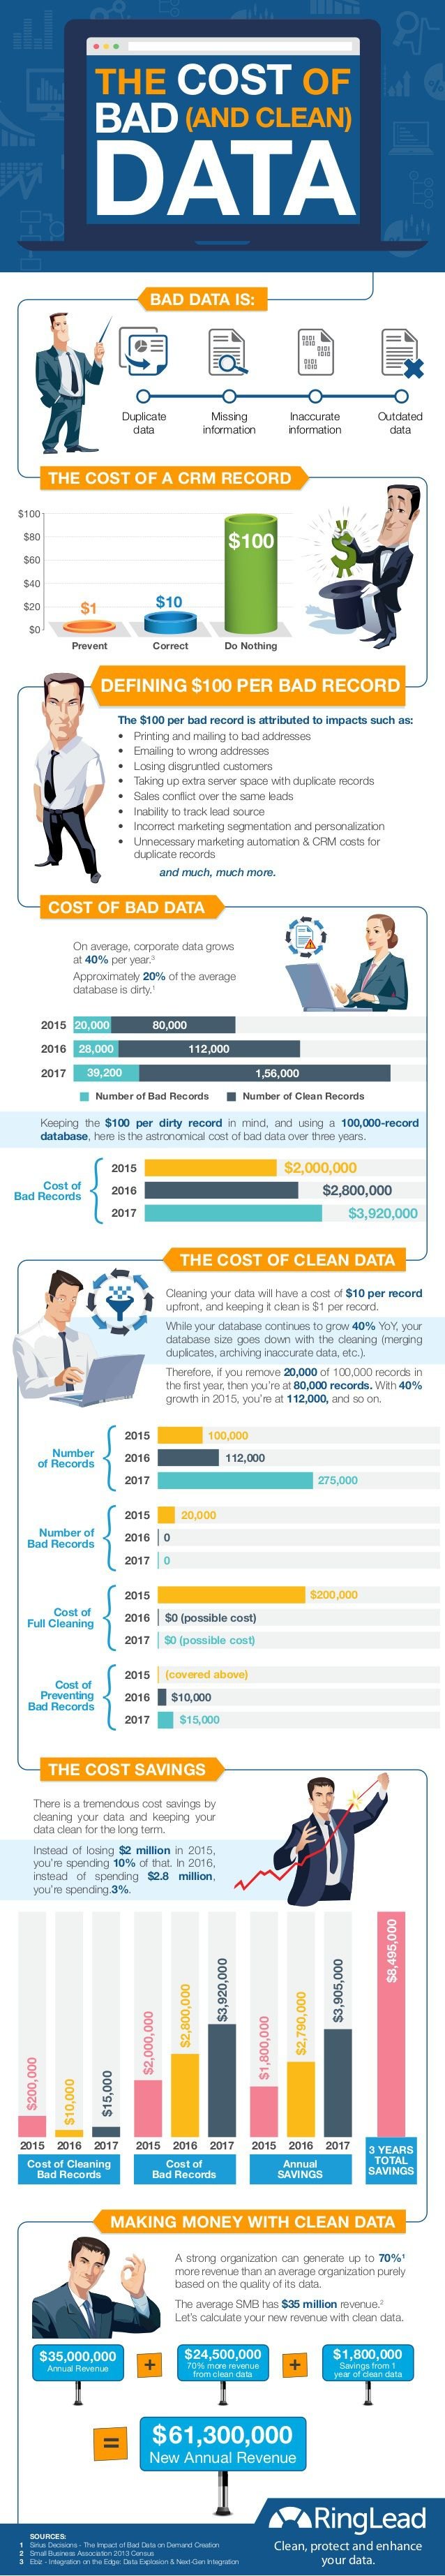 The cost of bad DATA #infographic #marketing